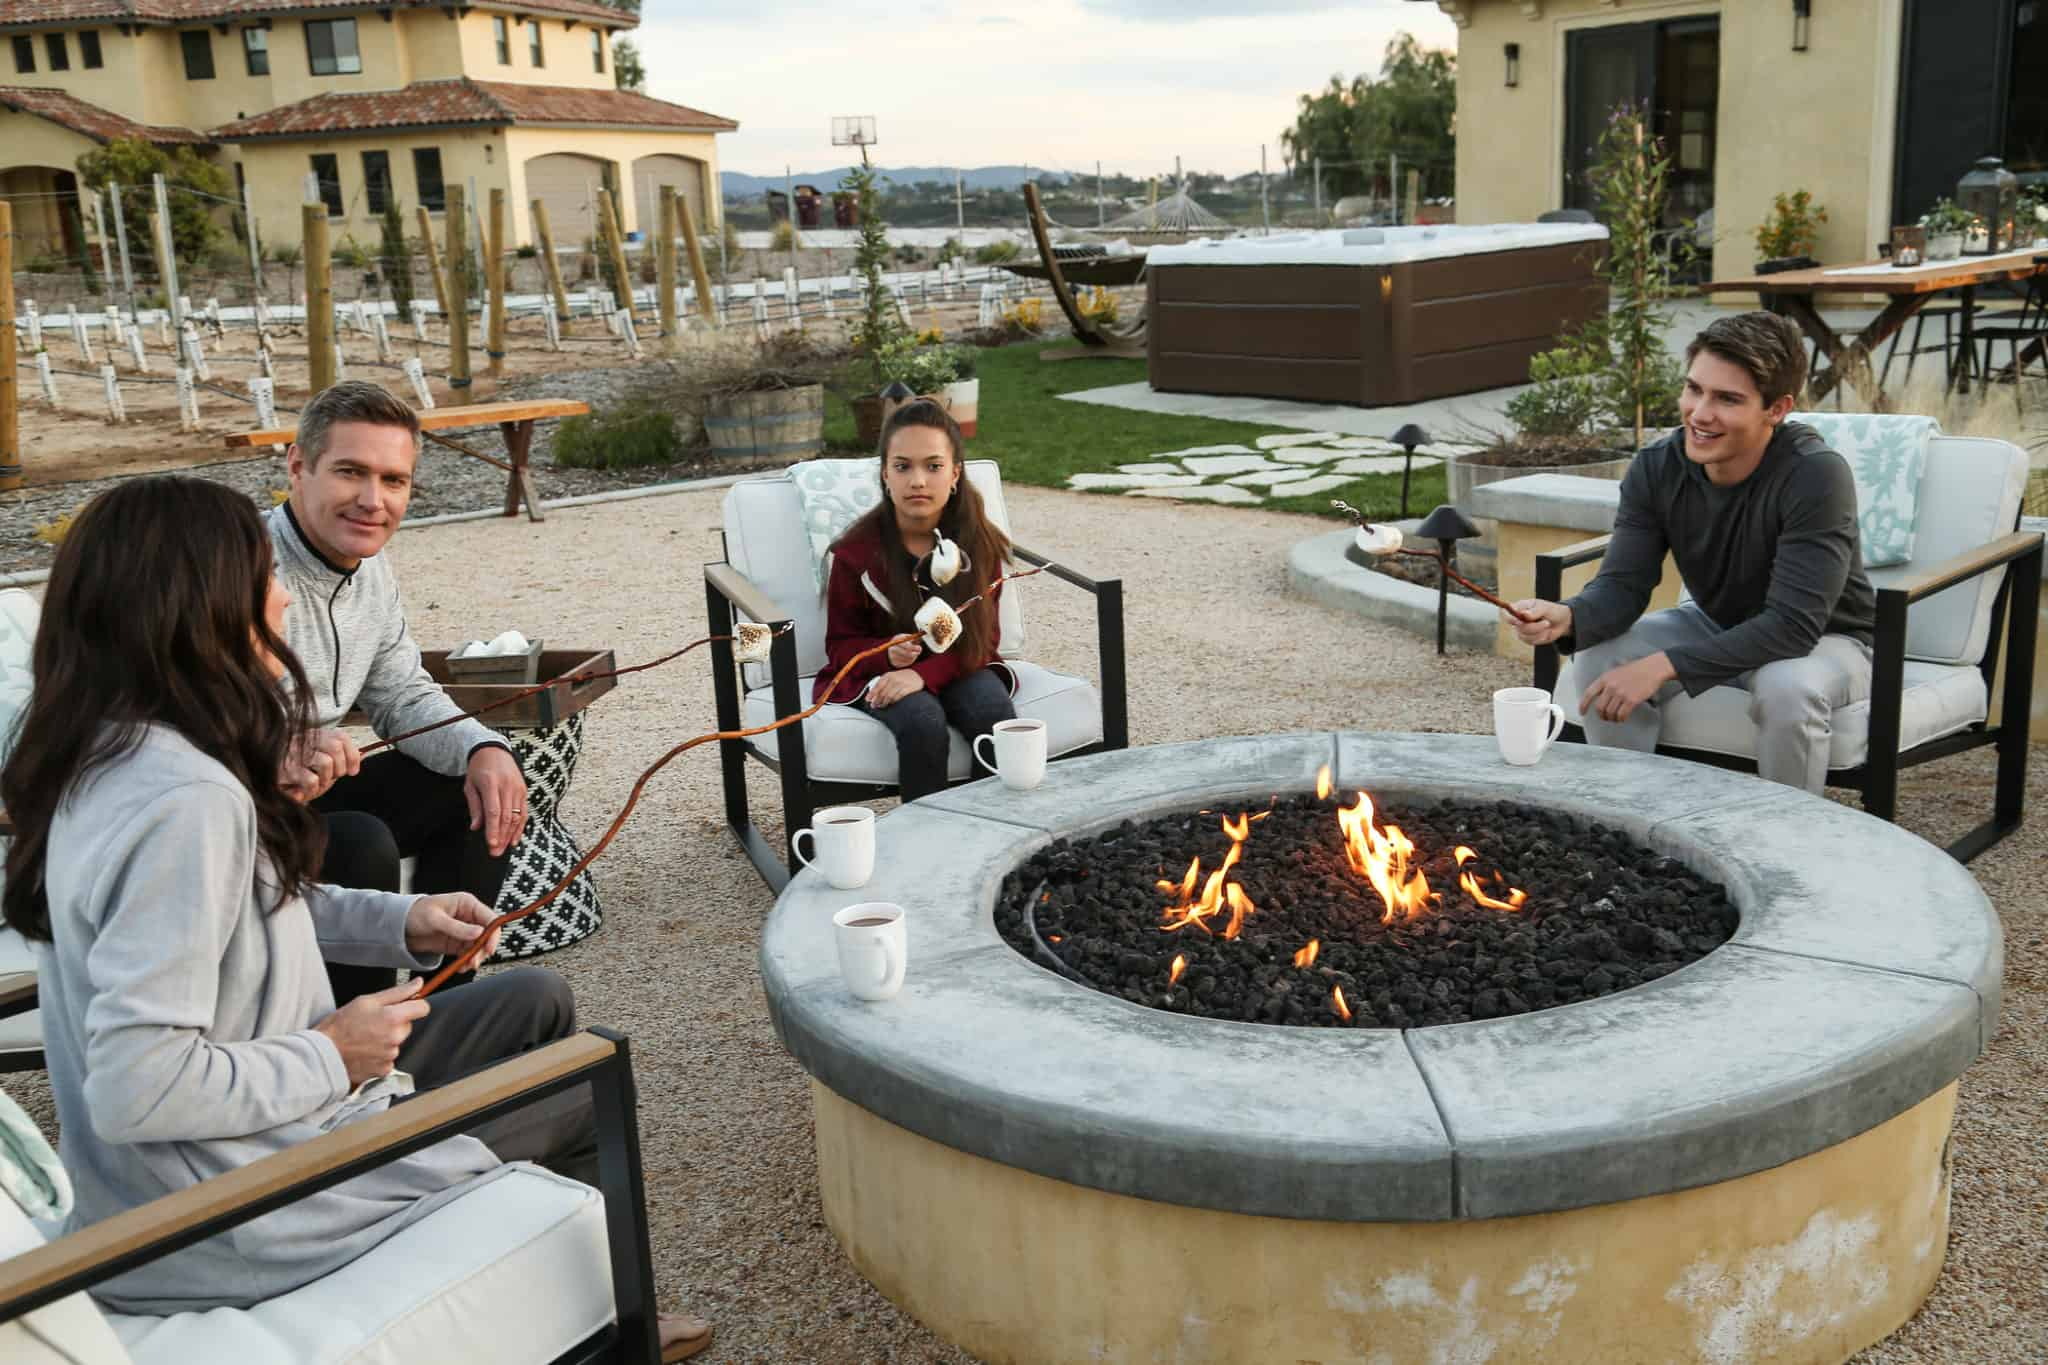 Family sitting by the fire with a hot tub and hammock in the background